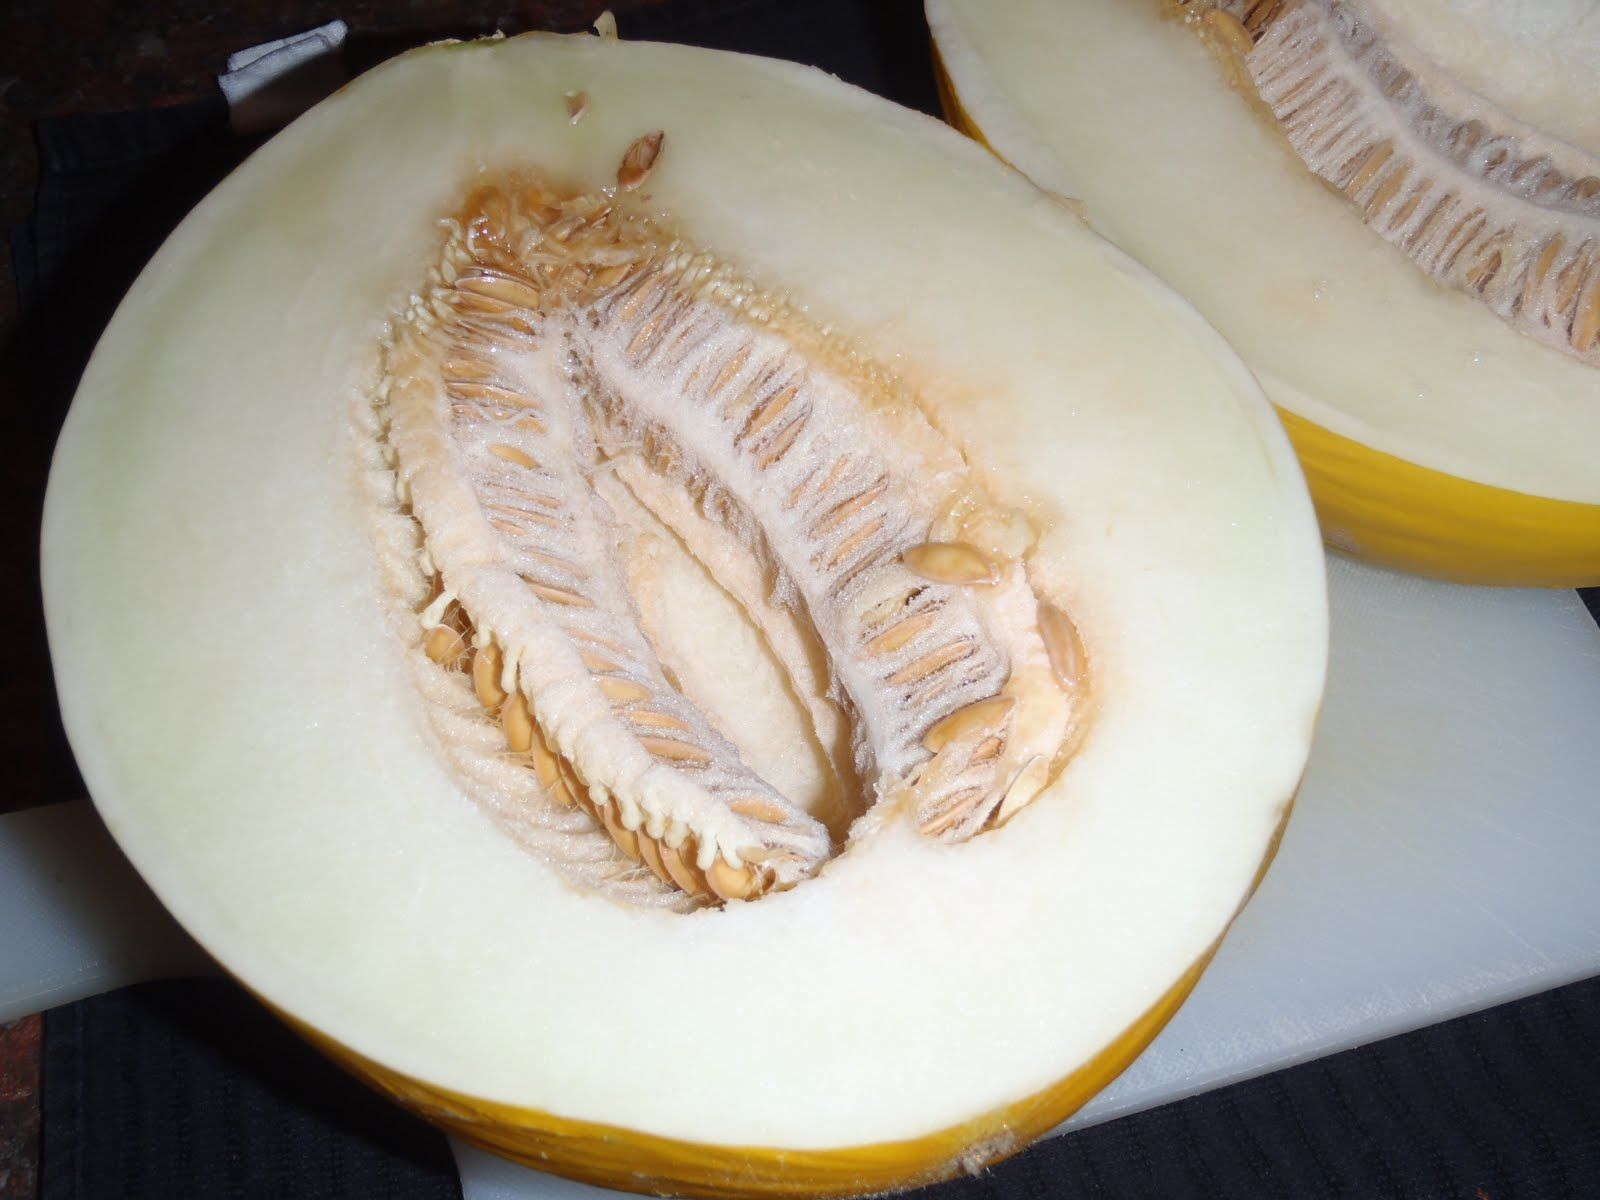 canary melon how to eat